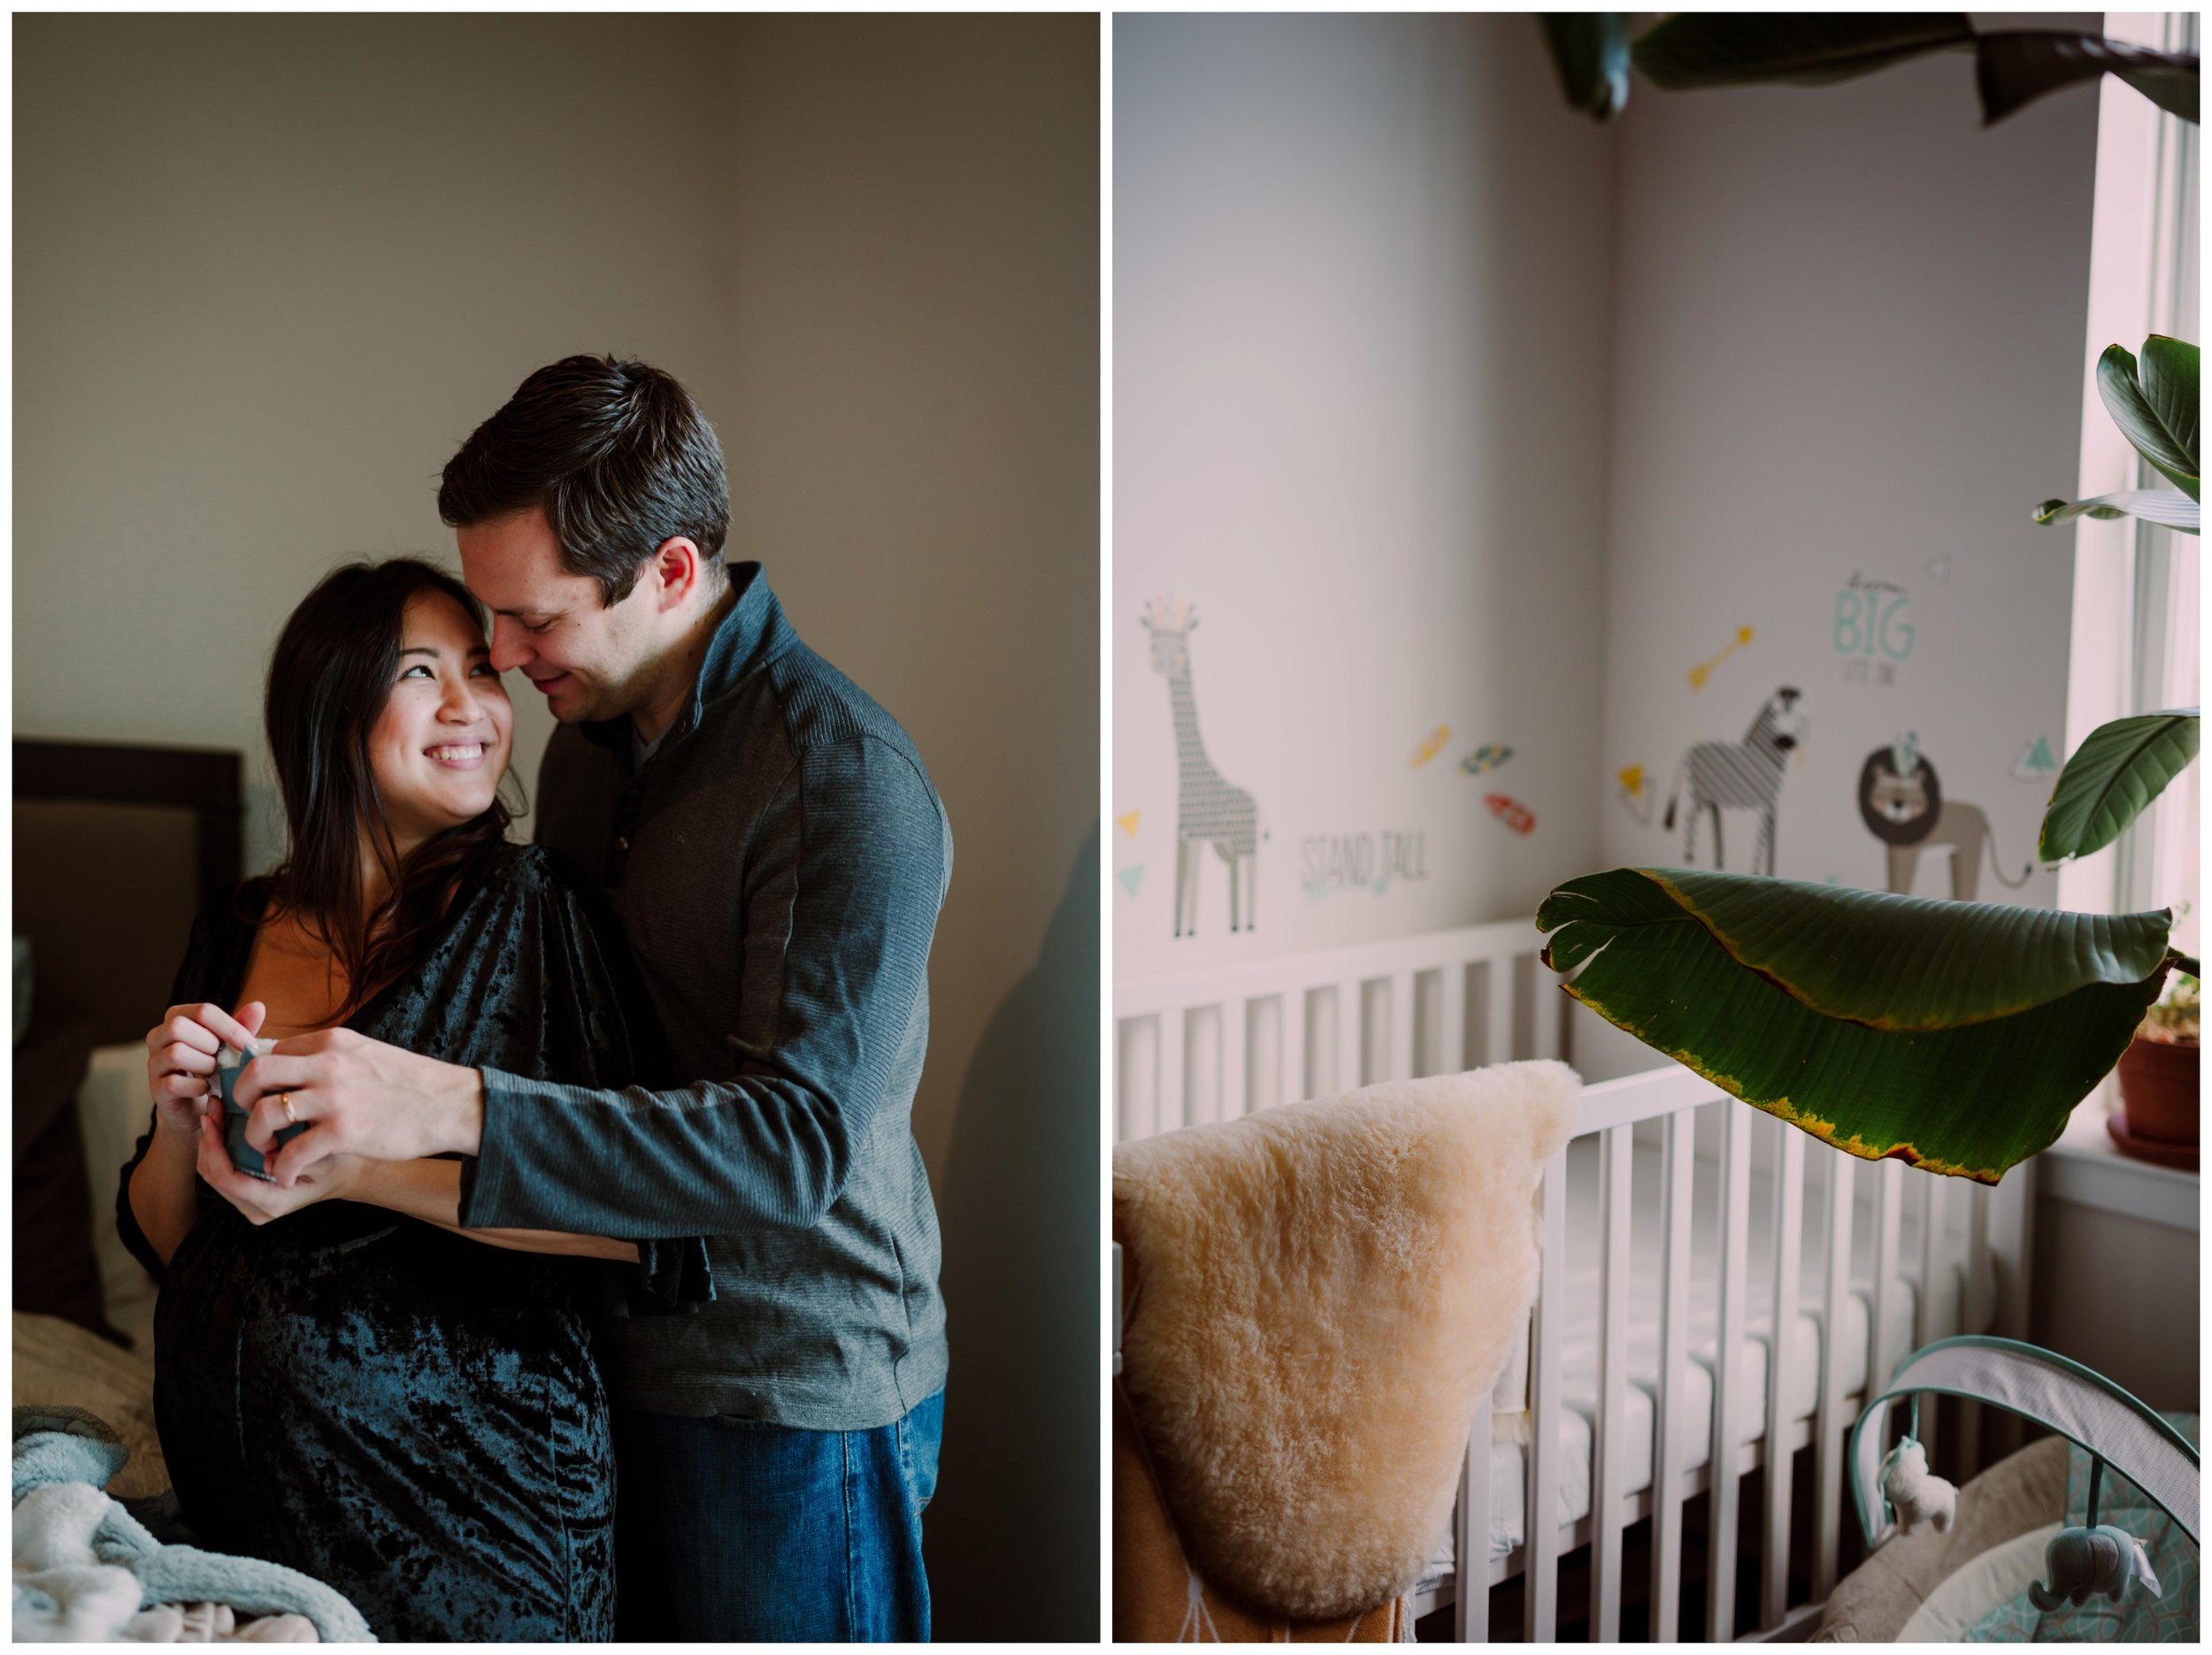 Jasmin & Mark's Philadelphia In-Home Maternity Session | Philadelphia Maternity Photographer-48.jpg